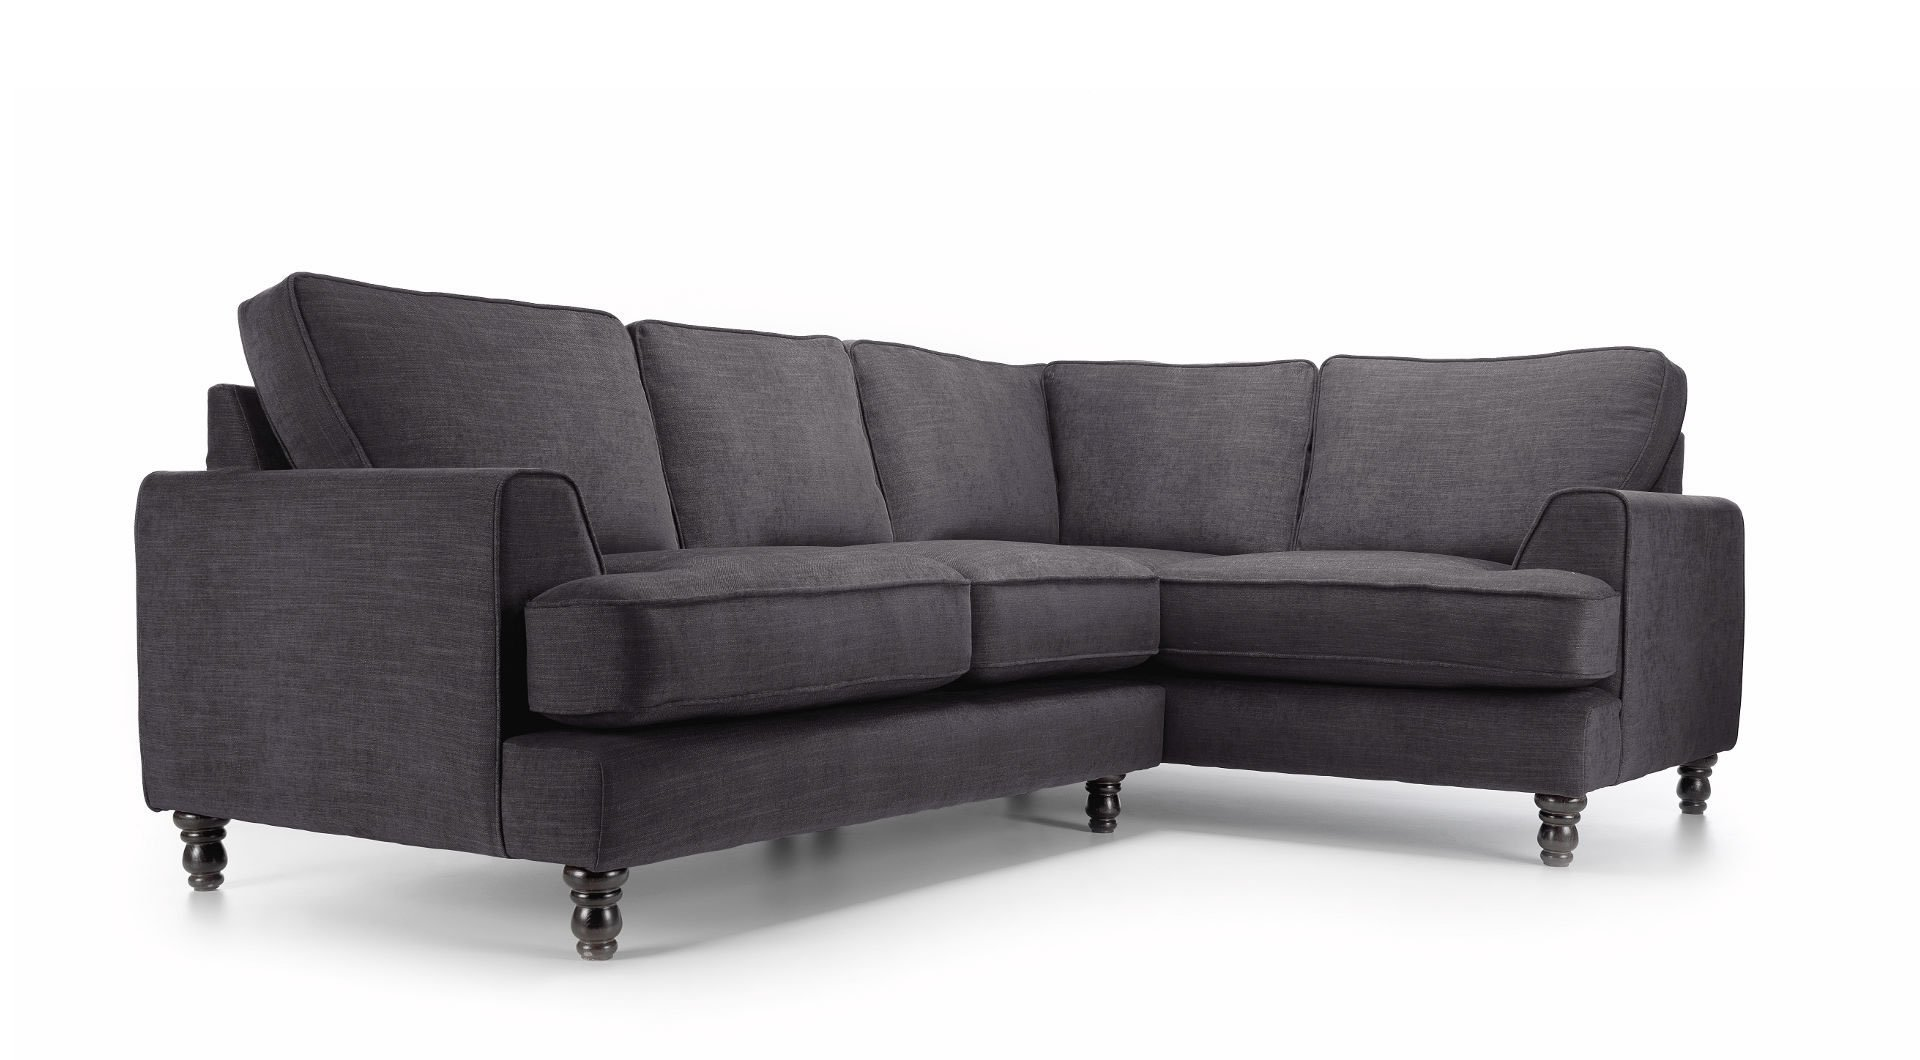 large dark grey corner sofa theater seating sectional bonnie mysmallspace